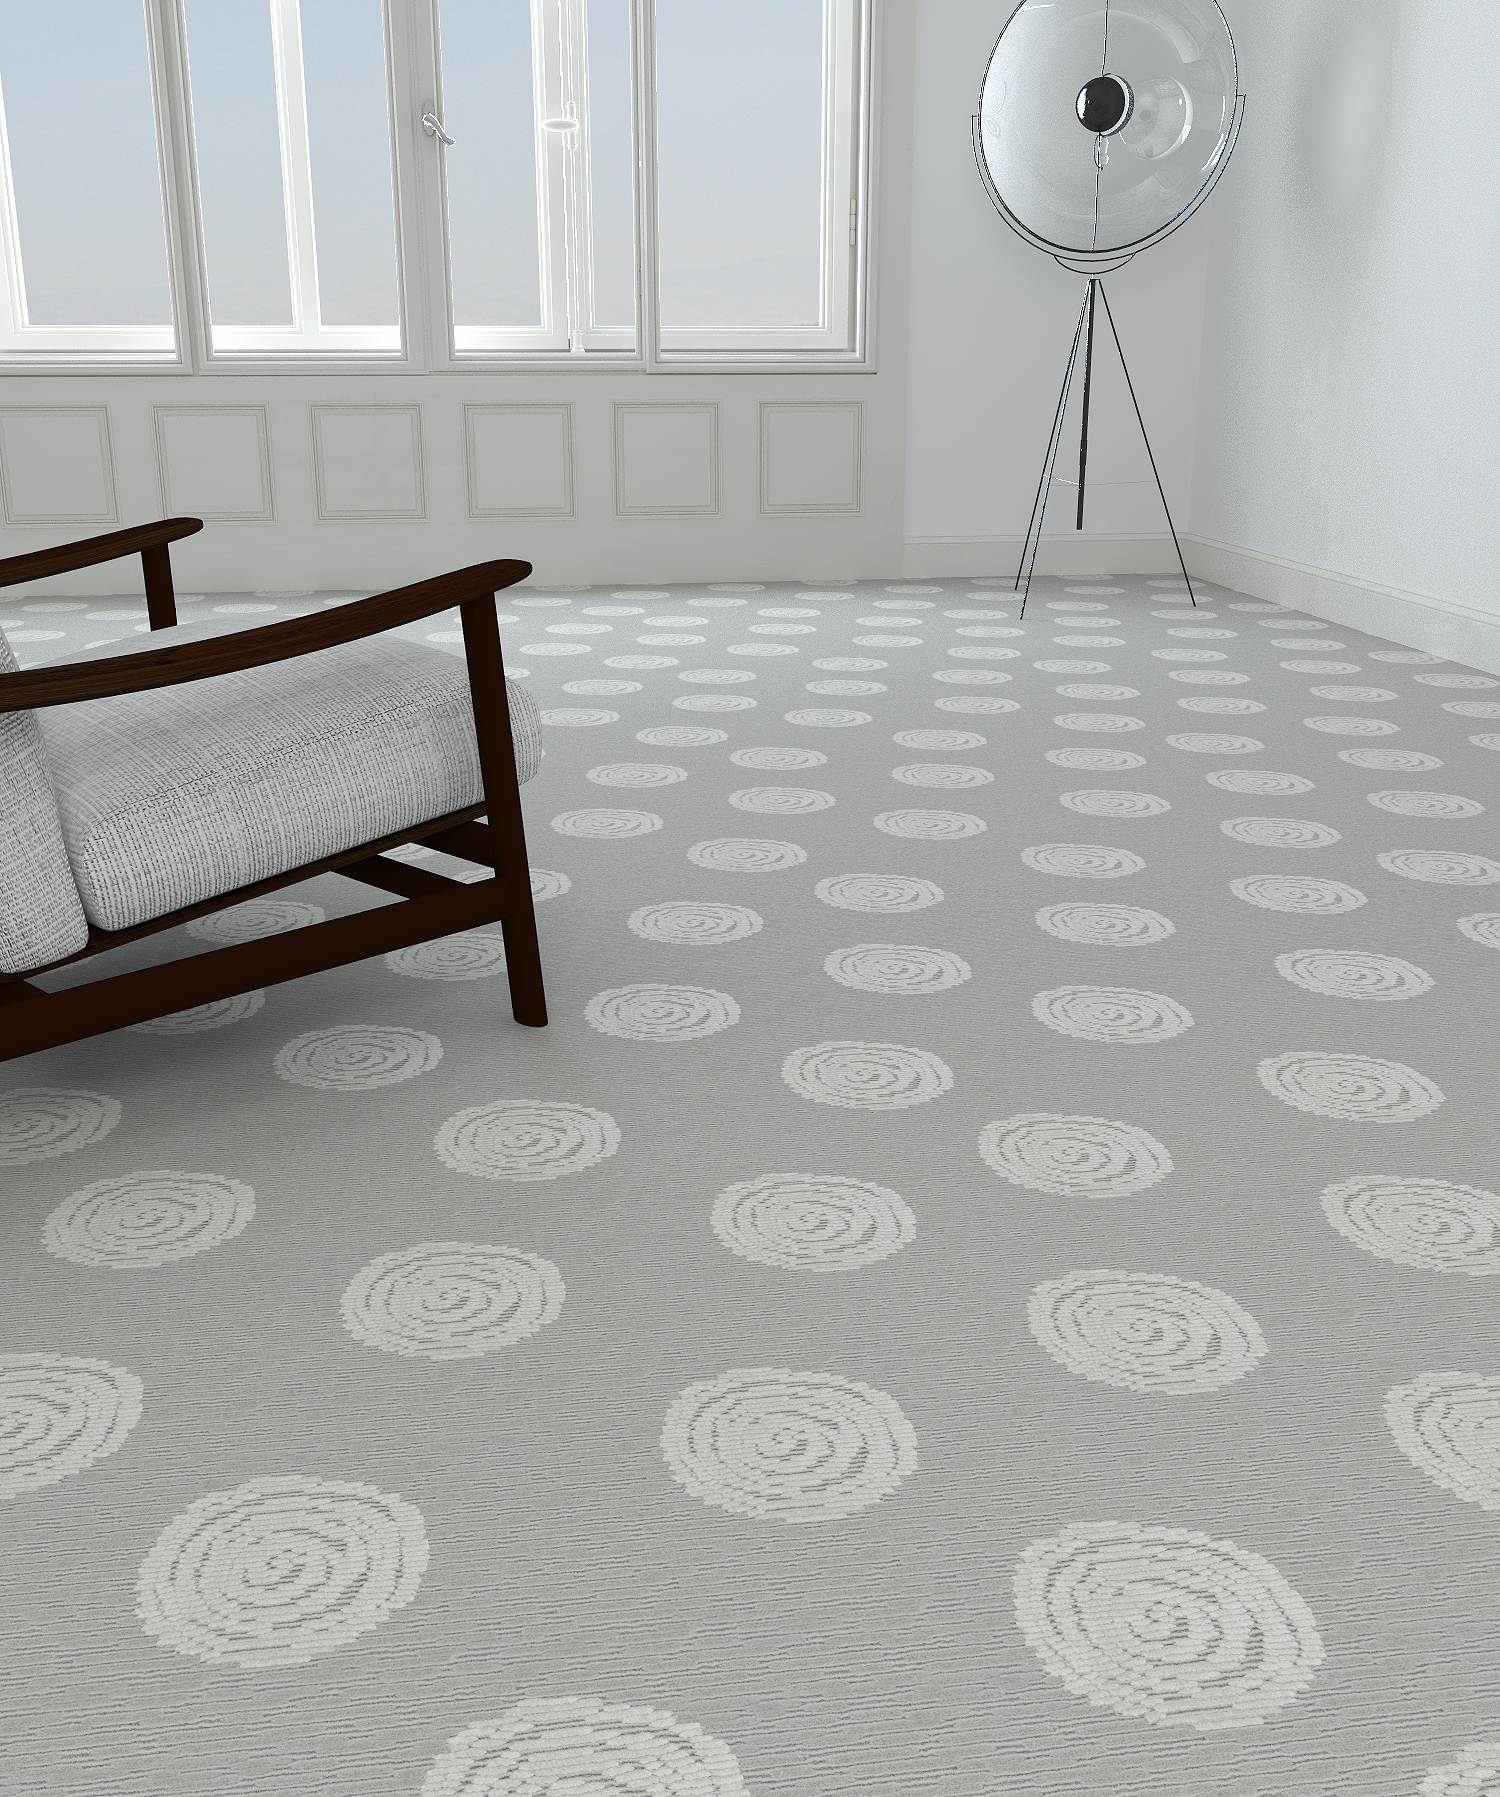 A Homeowner's Guide to Carpeting